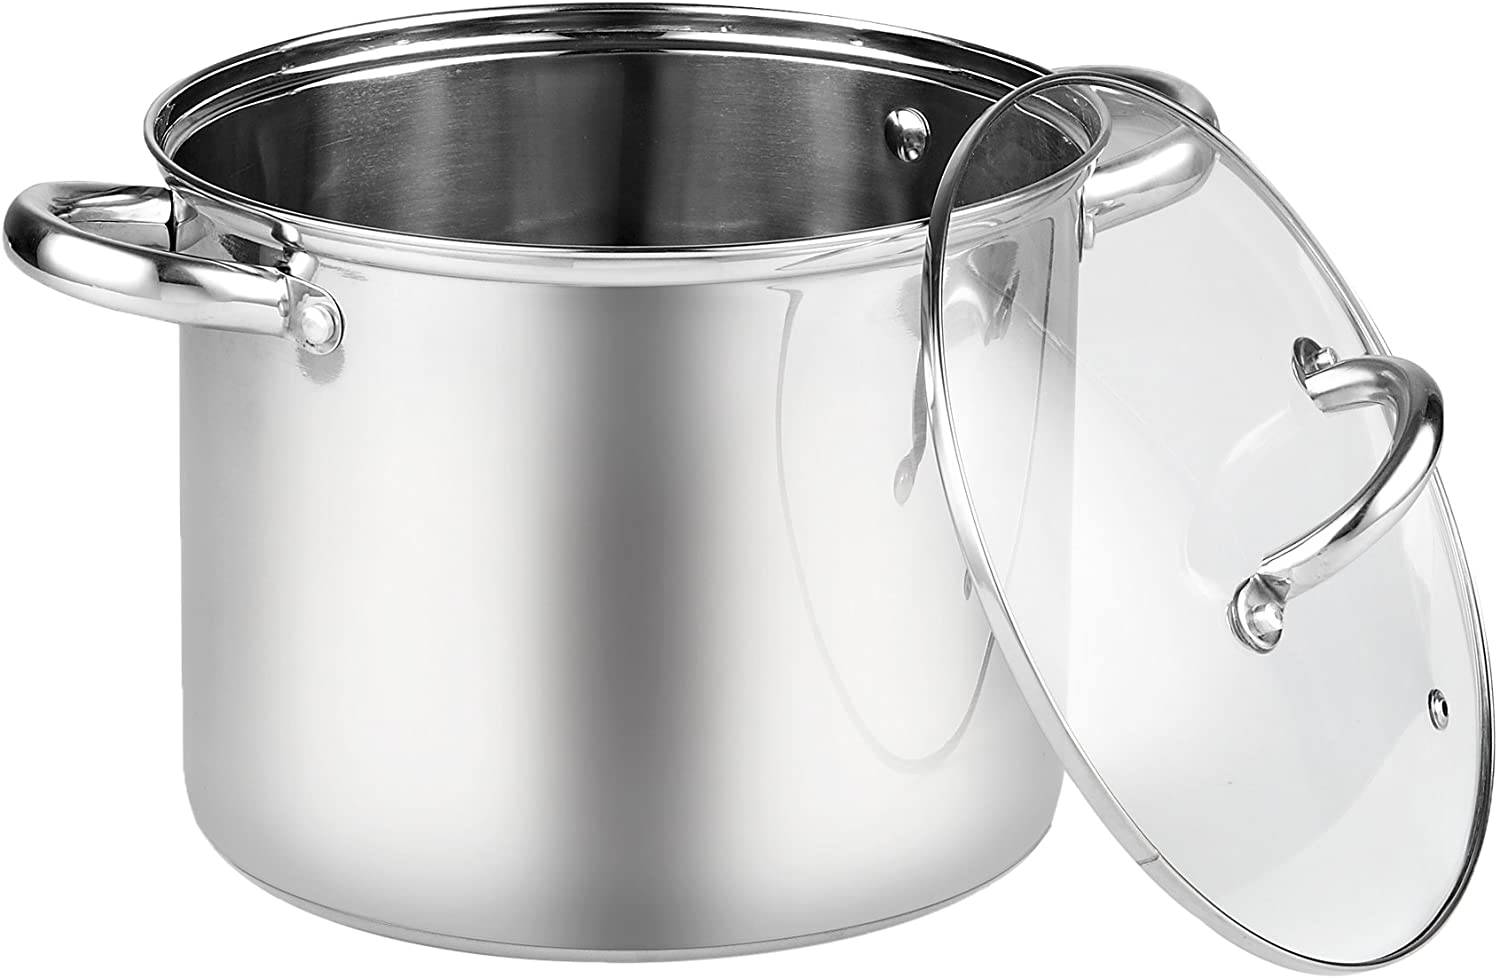 71kjQ pAFyL. AC SL1500 The Best Gumbo Pots (Stockpots) for the Money 2021